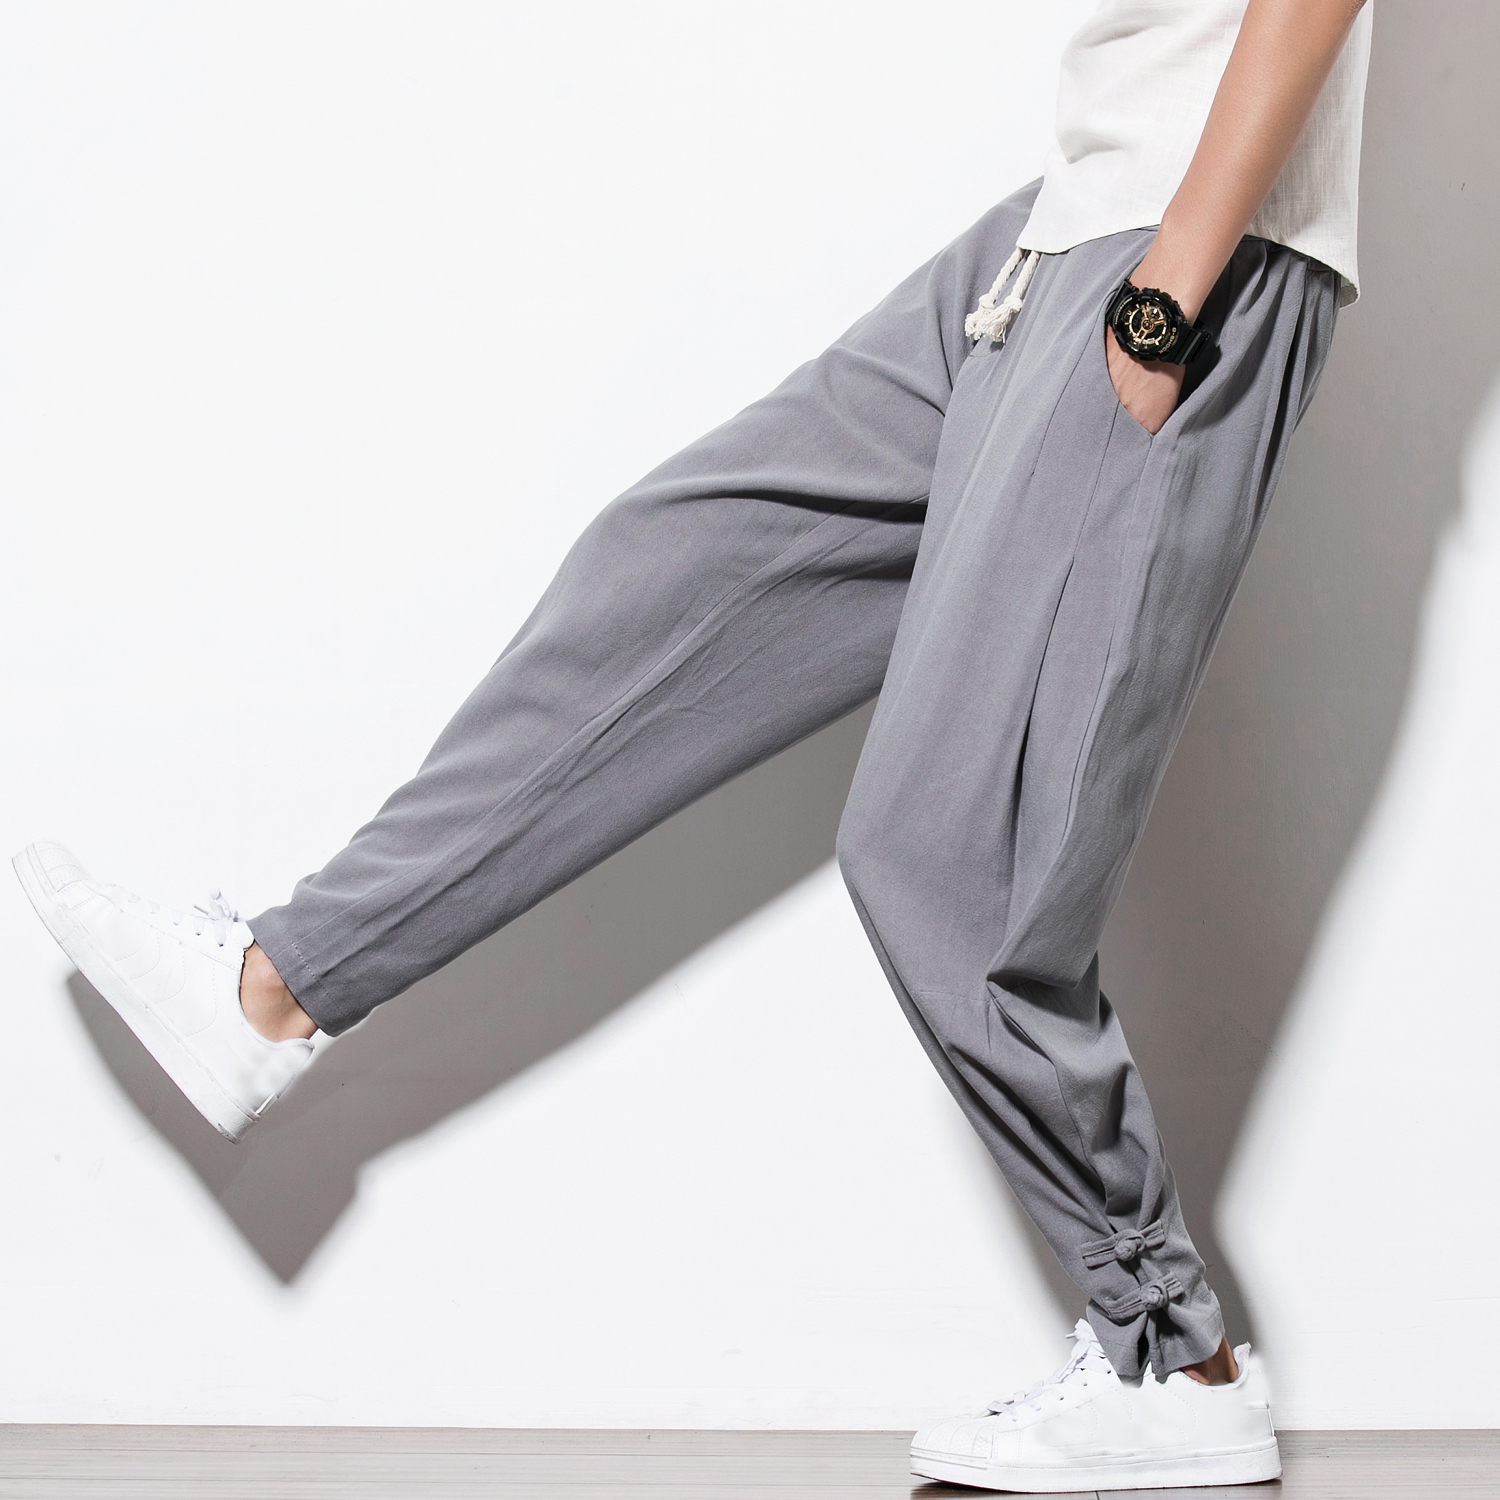 2019 Autumn New Harem Pants Men Casual Sweatpants Elastic Waist Plus Size Brand Clothing Mens Joggers Pants Hip Hop Trousers